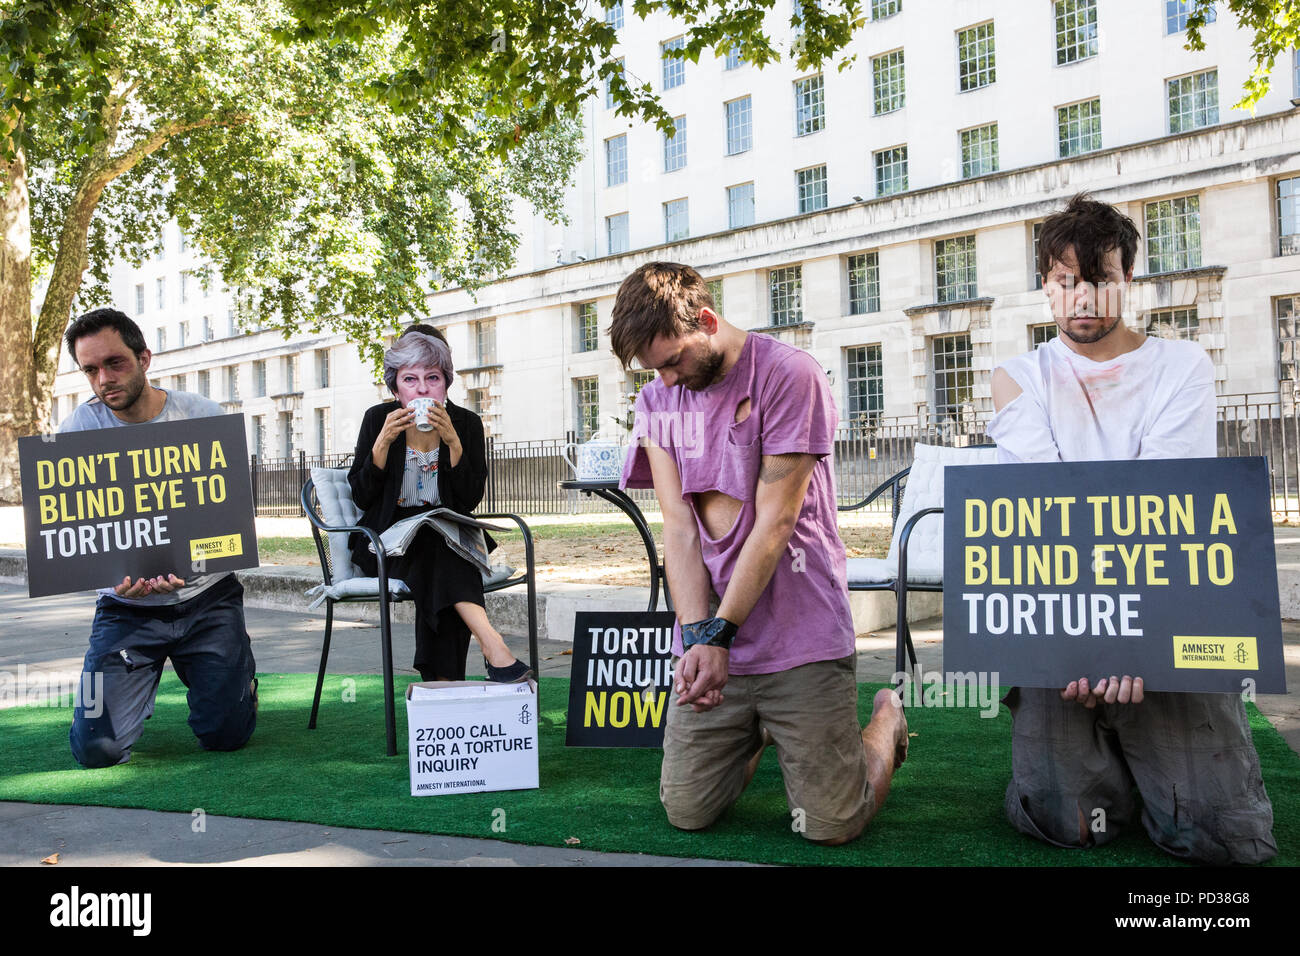 London, UK. 6th August, 2018. An activist from Amnesty UK wearing a Theresa May mask drinks tea outside Downing Street while ignoring three victims of torture as part of a protest calling for an independent, judge-led inquiry into the UK's involvement in the torture of detainees overseas. A petition was also presented to 10 Downing Street by Amnesty UK Director Kate Allen, Simone Abel of Reprieve, Sam Grant of Liberty and Sonya Sceats of Freedom from Torture). Credit: Mark Kerrison/Alamy Live News Stock Photo